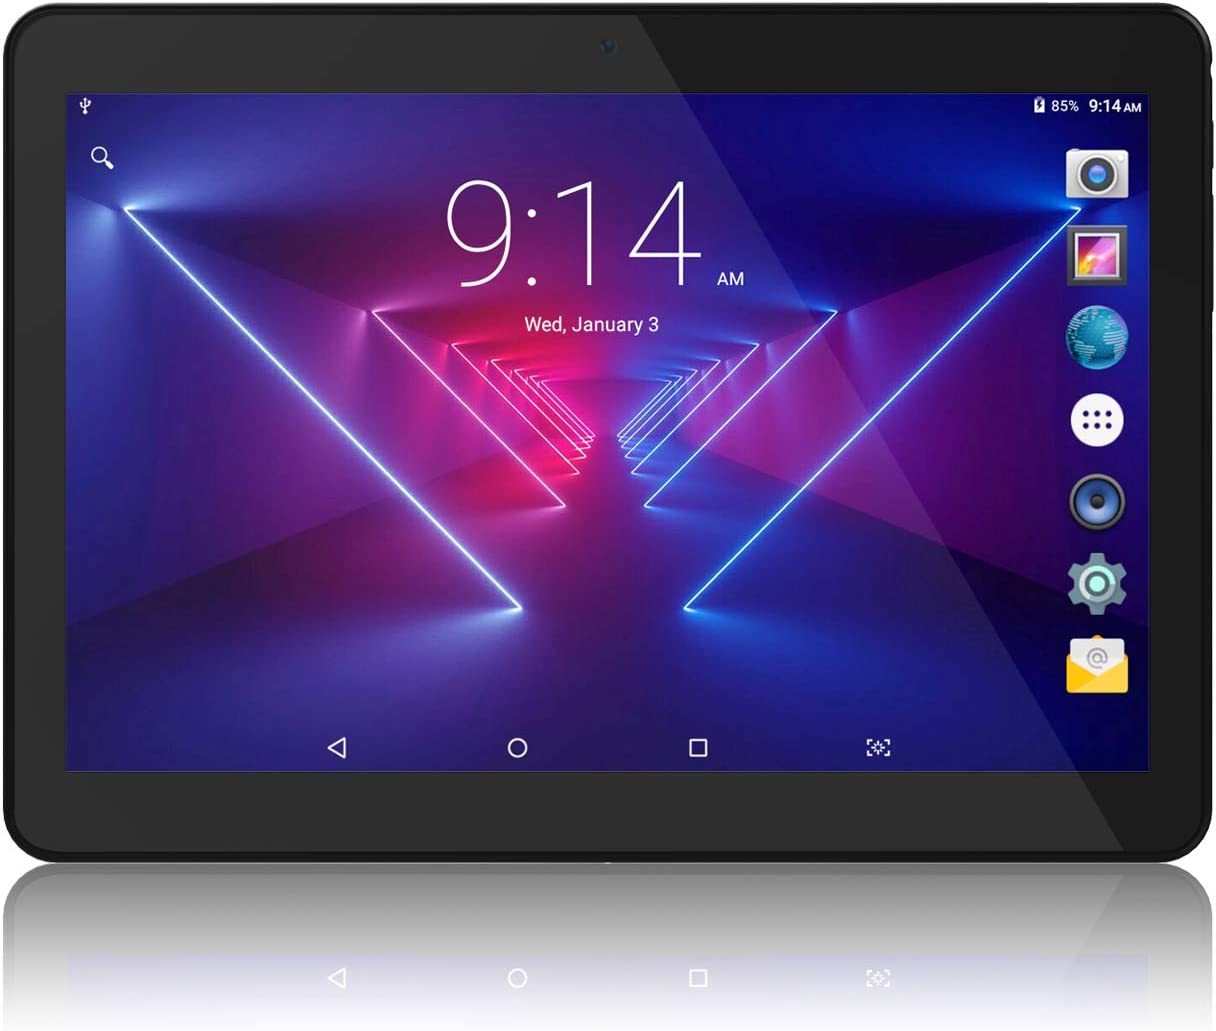 """Tablet 10 inch Android 8.1 Go, 10.1"""" 5G WiFi Tablets,6000mAh Battery,Quad-Core Processor, 800x1280 Touch Screen Full HD Display,1.3GHz,16GB, Bluetooth,Black"""